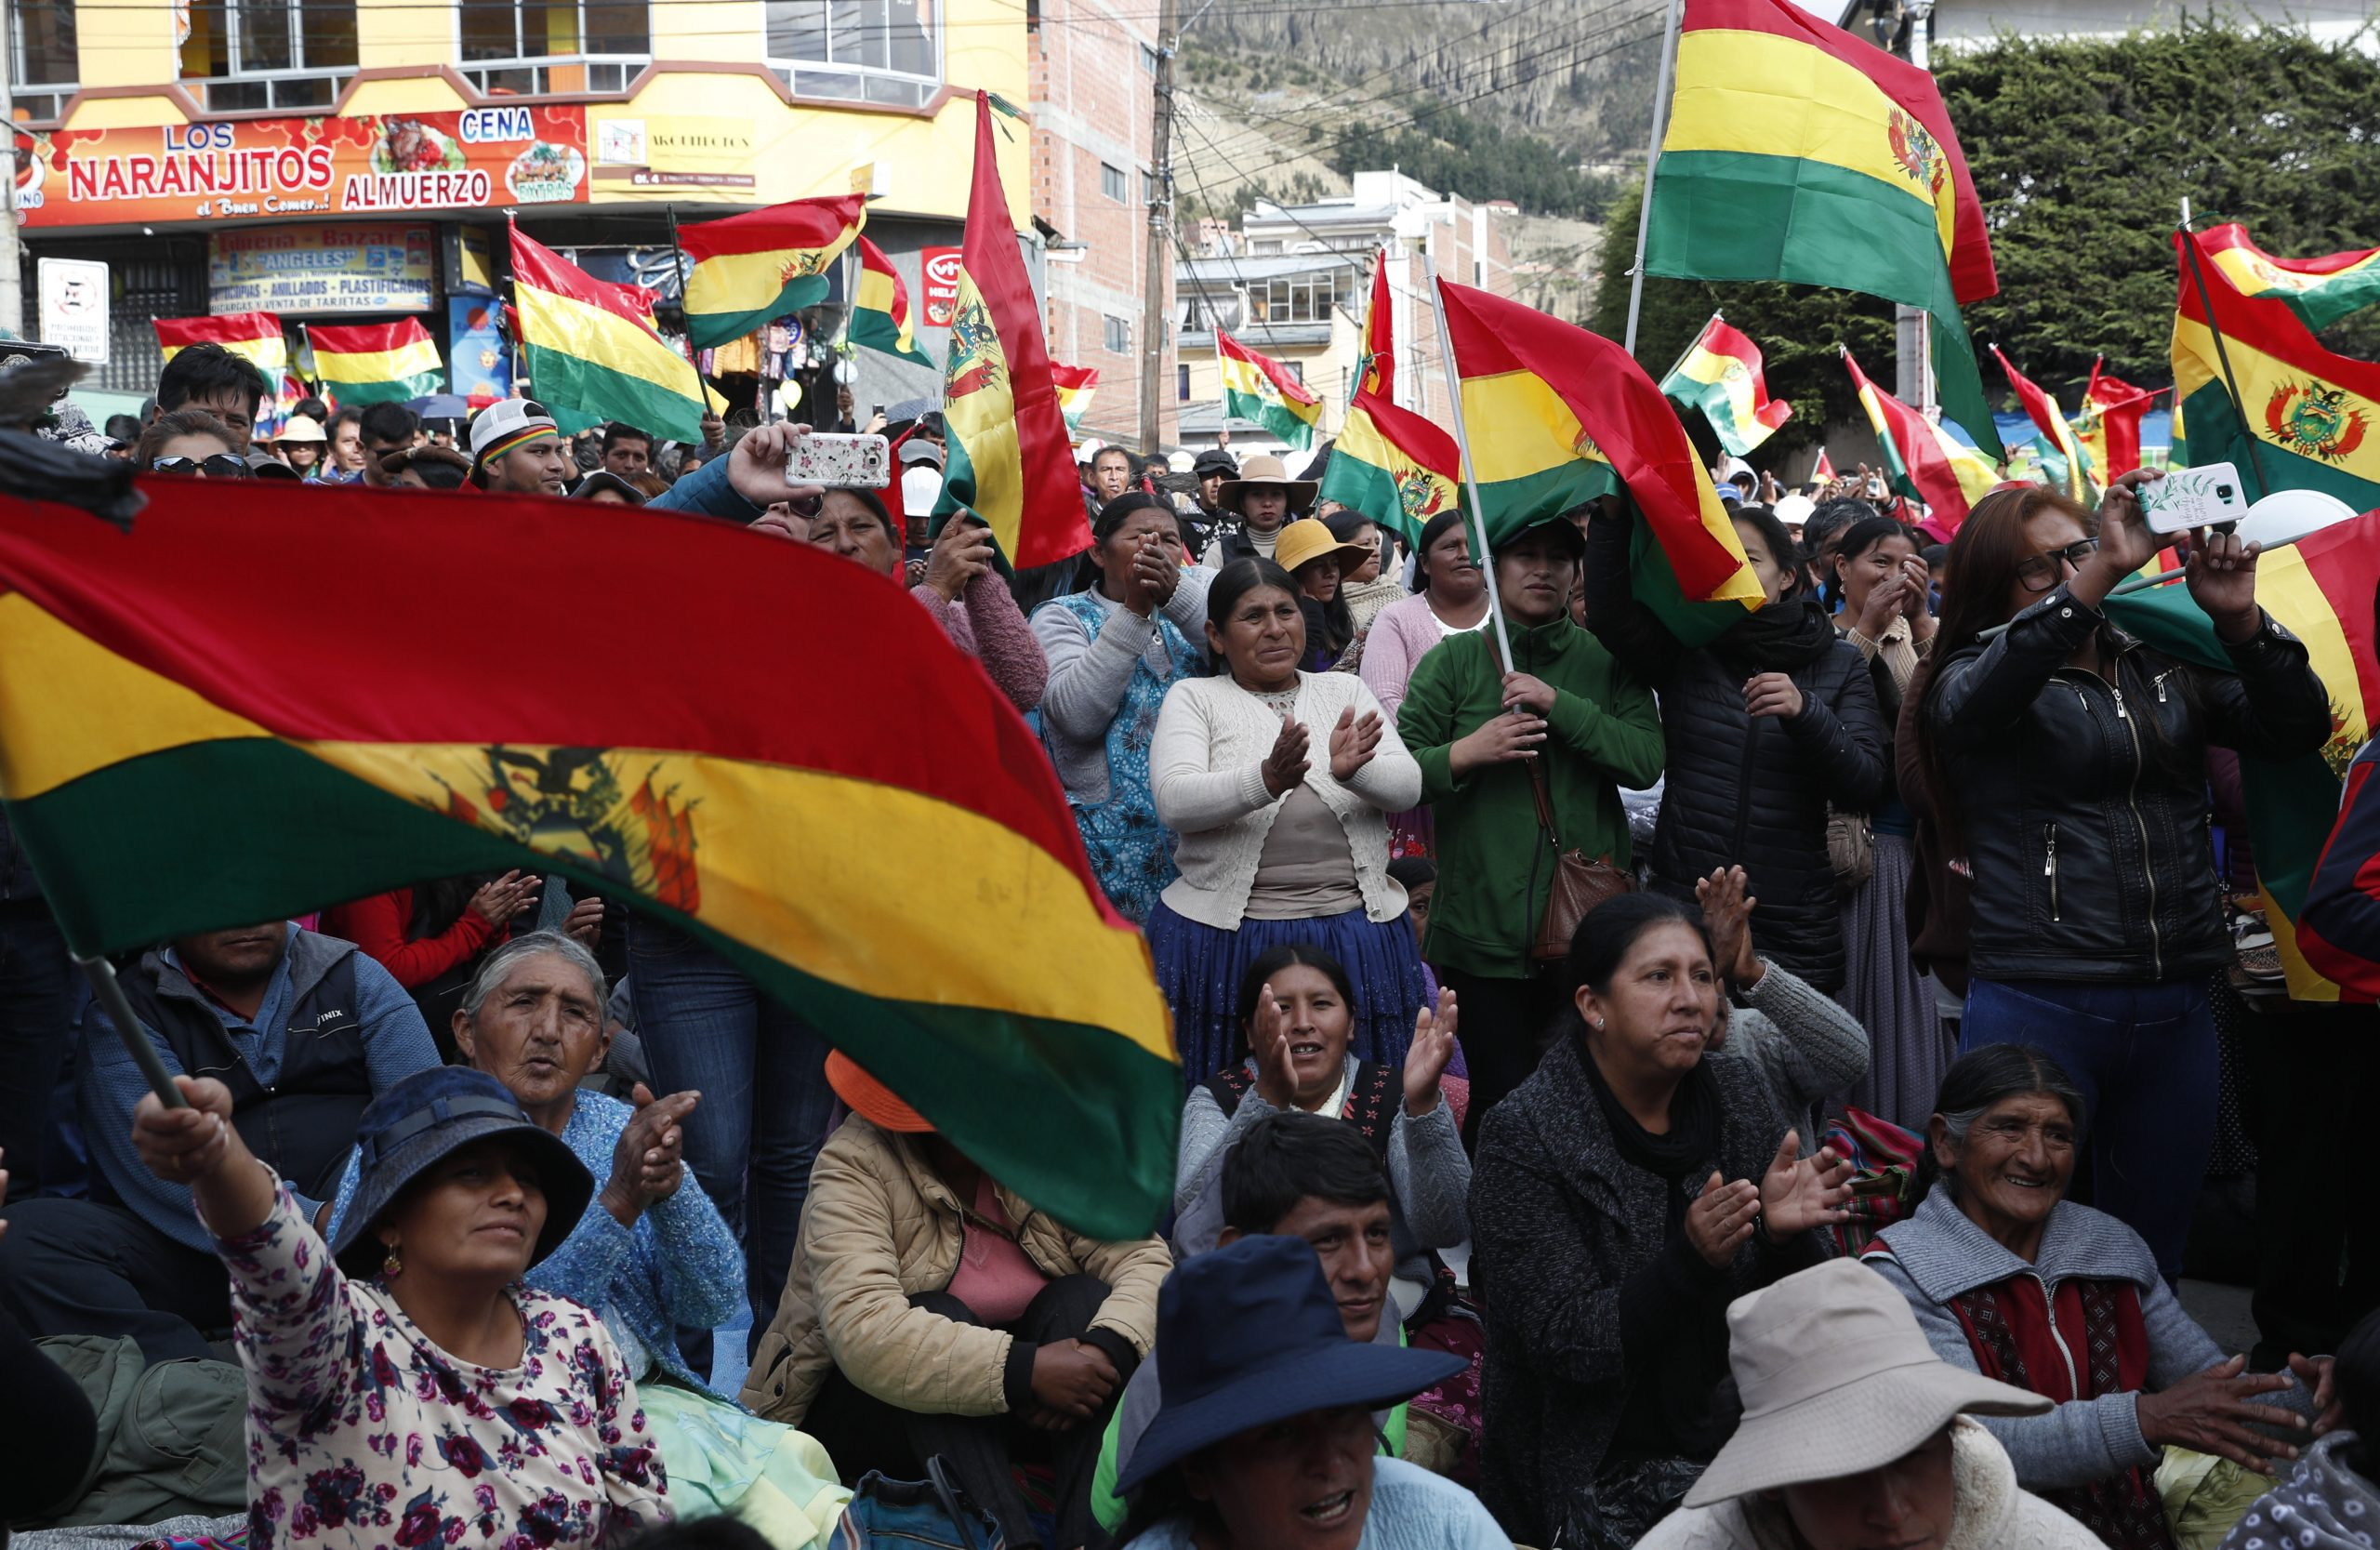 Bolivia Says It does not reject the dialogue posed by Morales and the PDC is willing with conditions